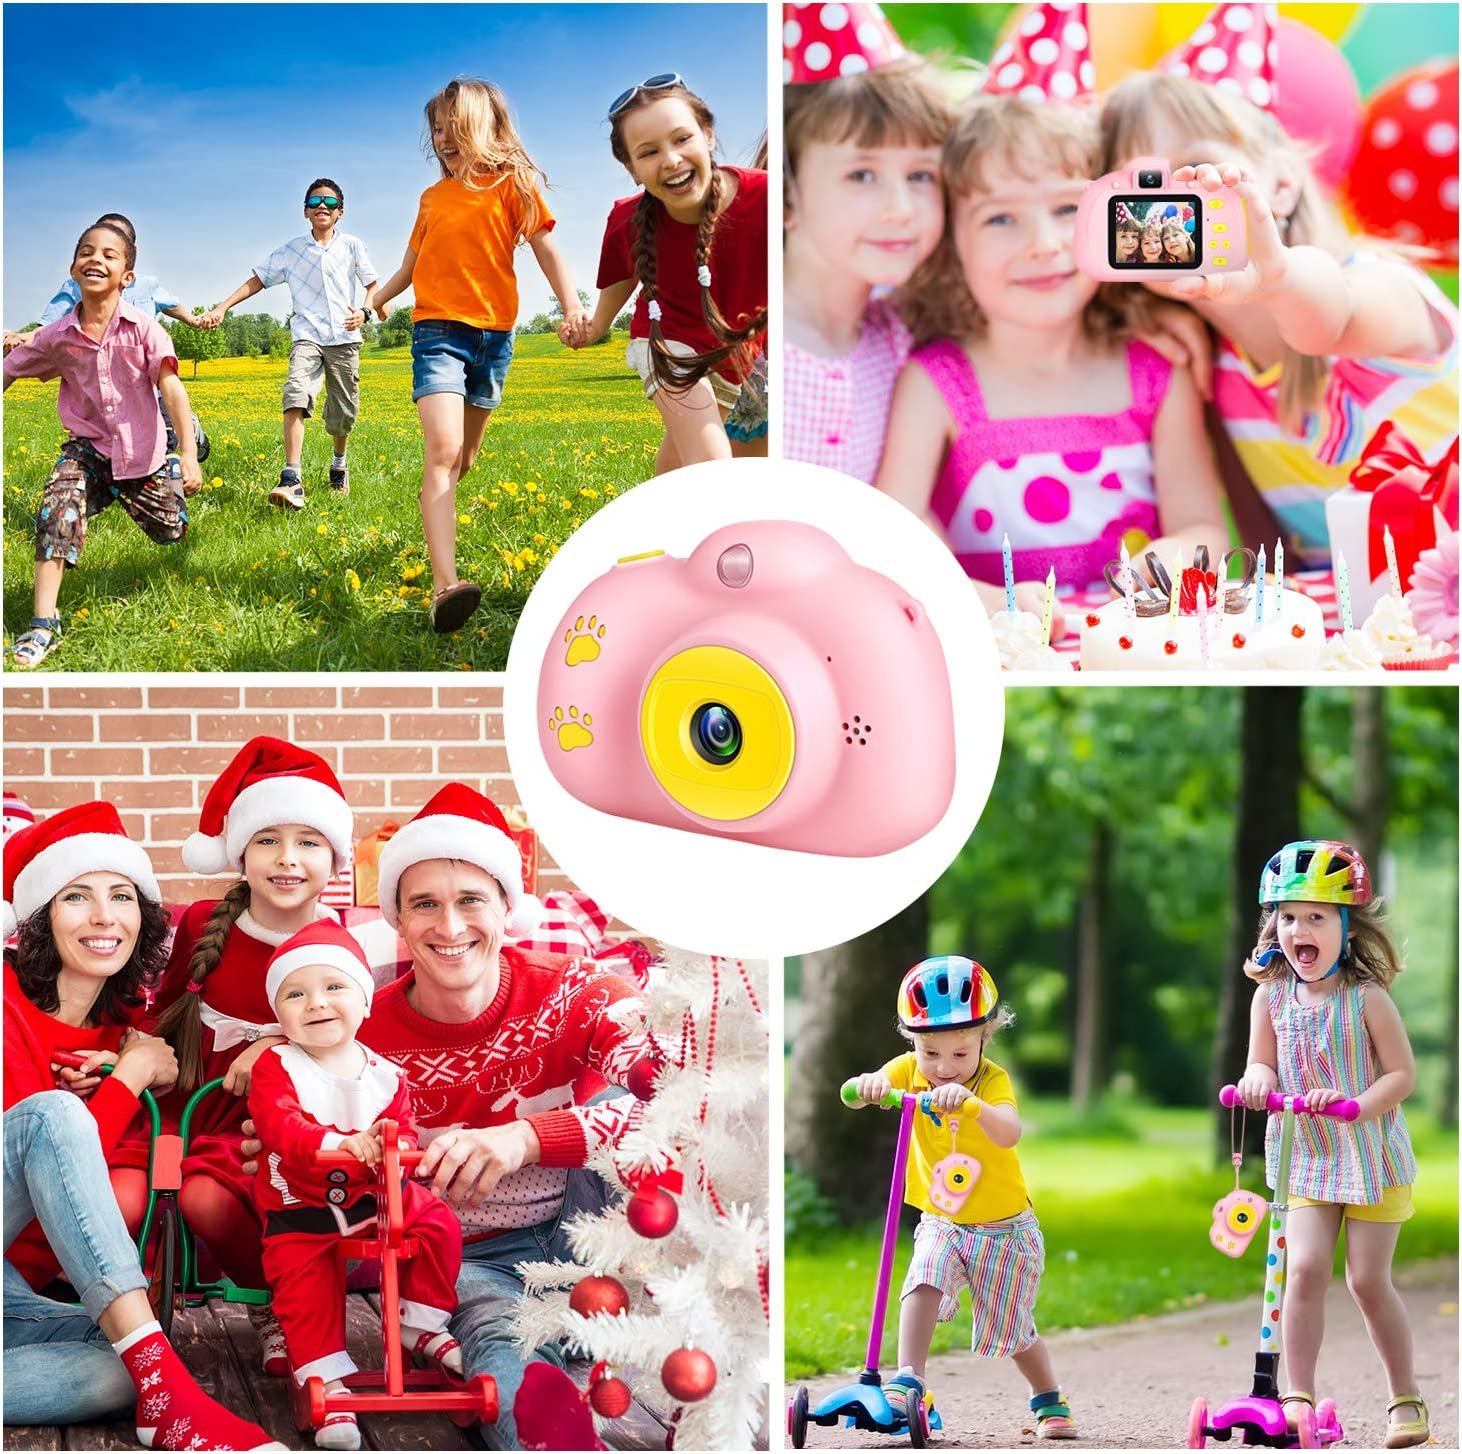 Kids Camera 1080P Selfie 8MP Dual Camera Children Digital Cameras Toys for 3-12 Age Girls and Boys Best Birthday Kids Gifts Toddler Shockproof Camera with Video Recorder 2.0 IPS 32GB SD Card Blue